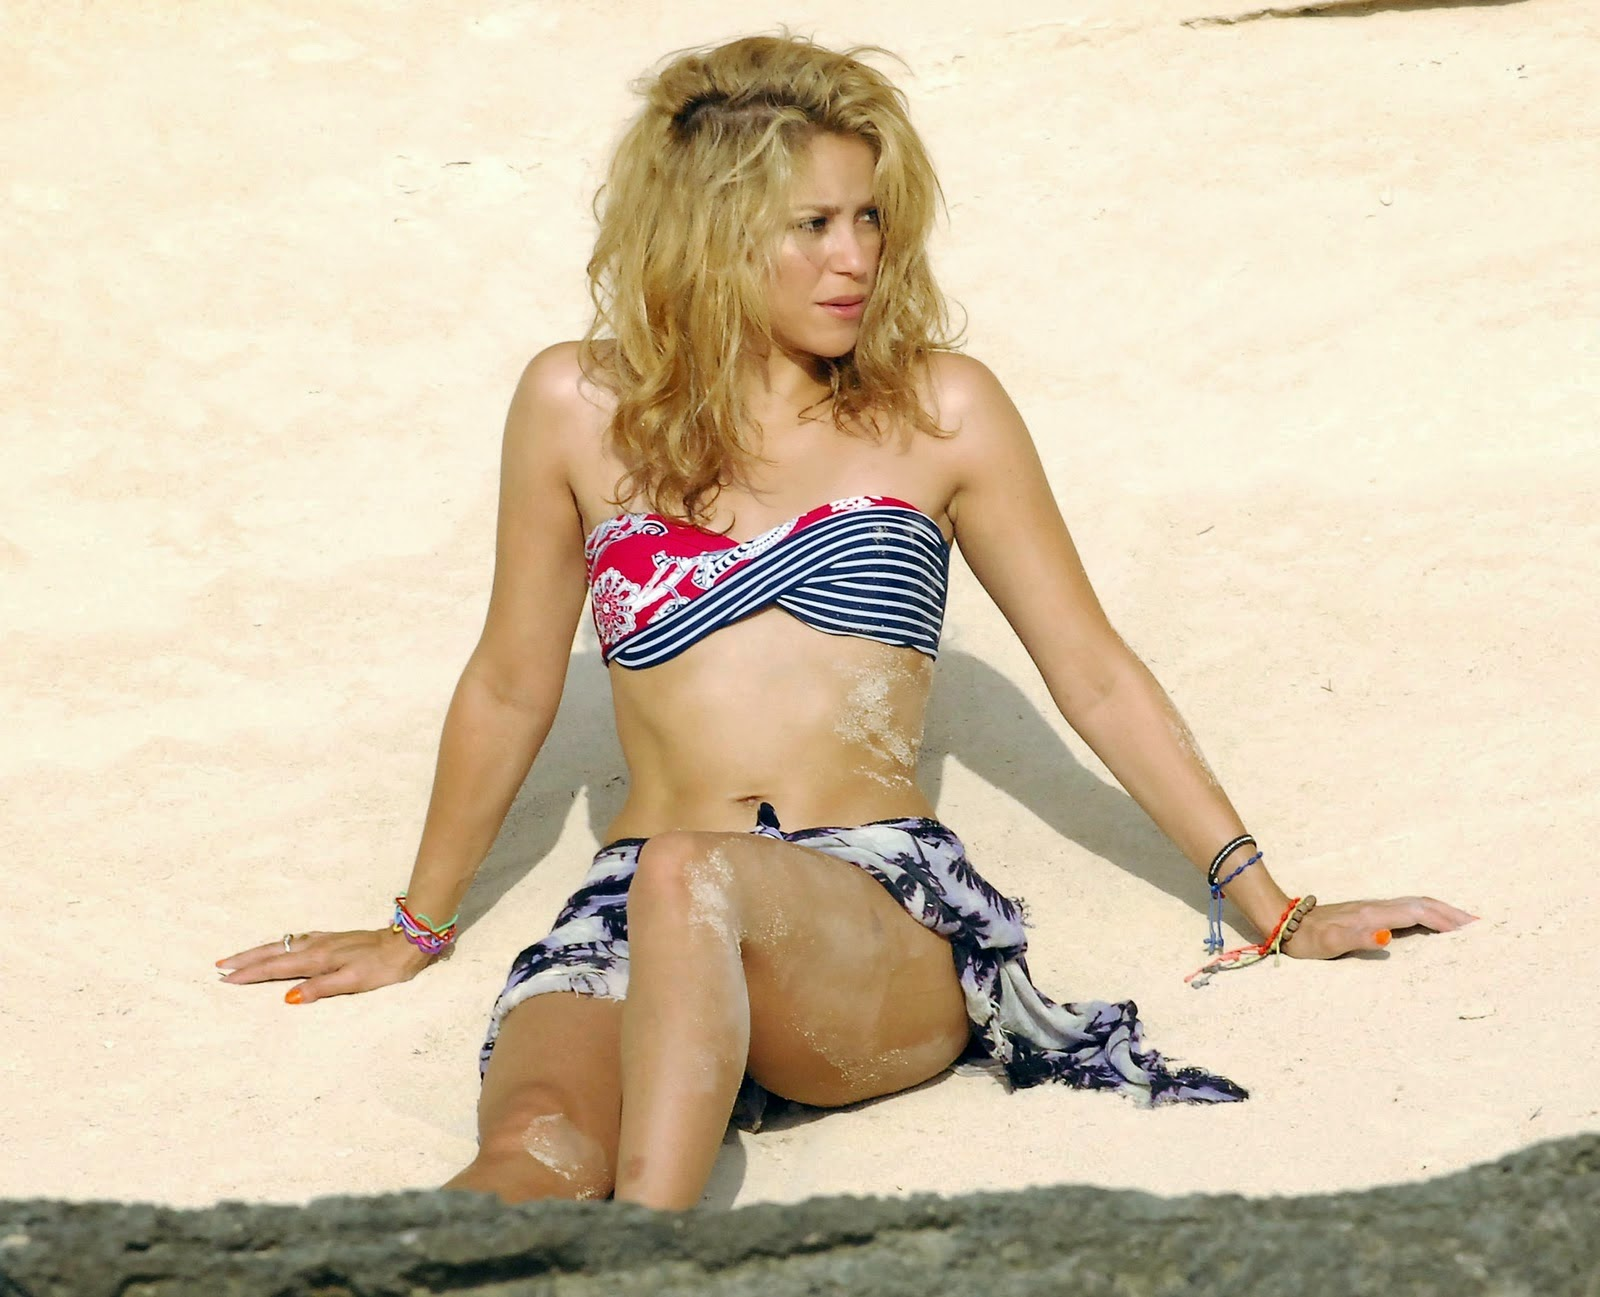 Shakira is one of the fans of Bikini Victoria Secret Products, here's the original photo Shakira Bikini time use on the beach.